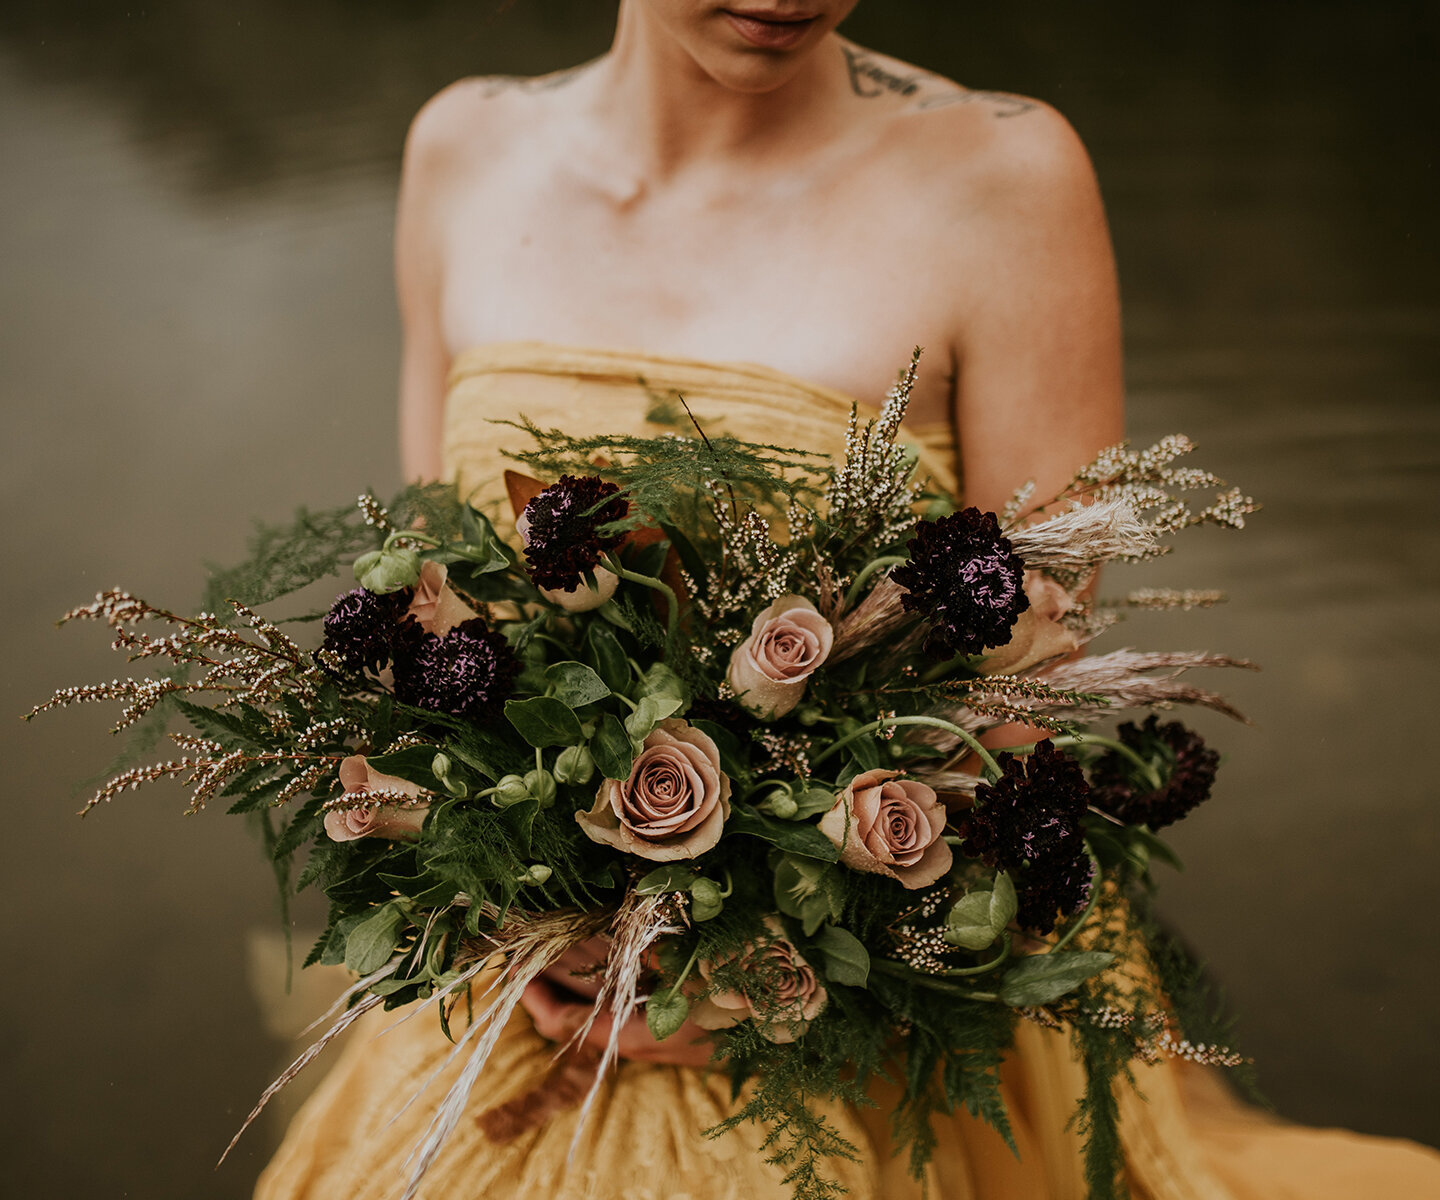 Bridal Bouquet Inspiration for Winter: 16 of the Prettiest Bouquets For Every Winter Wedding Style